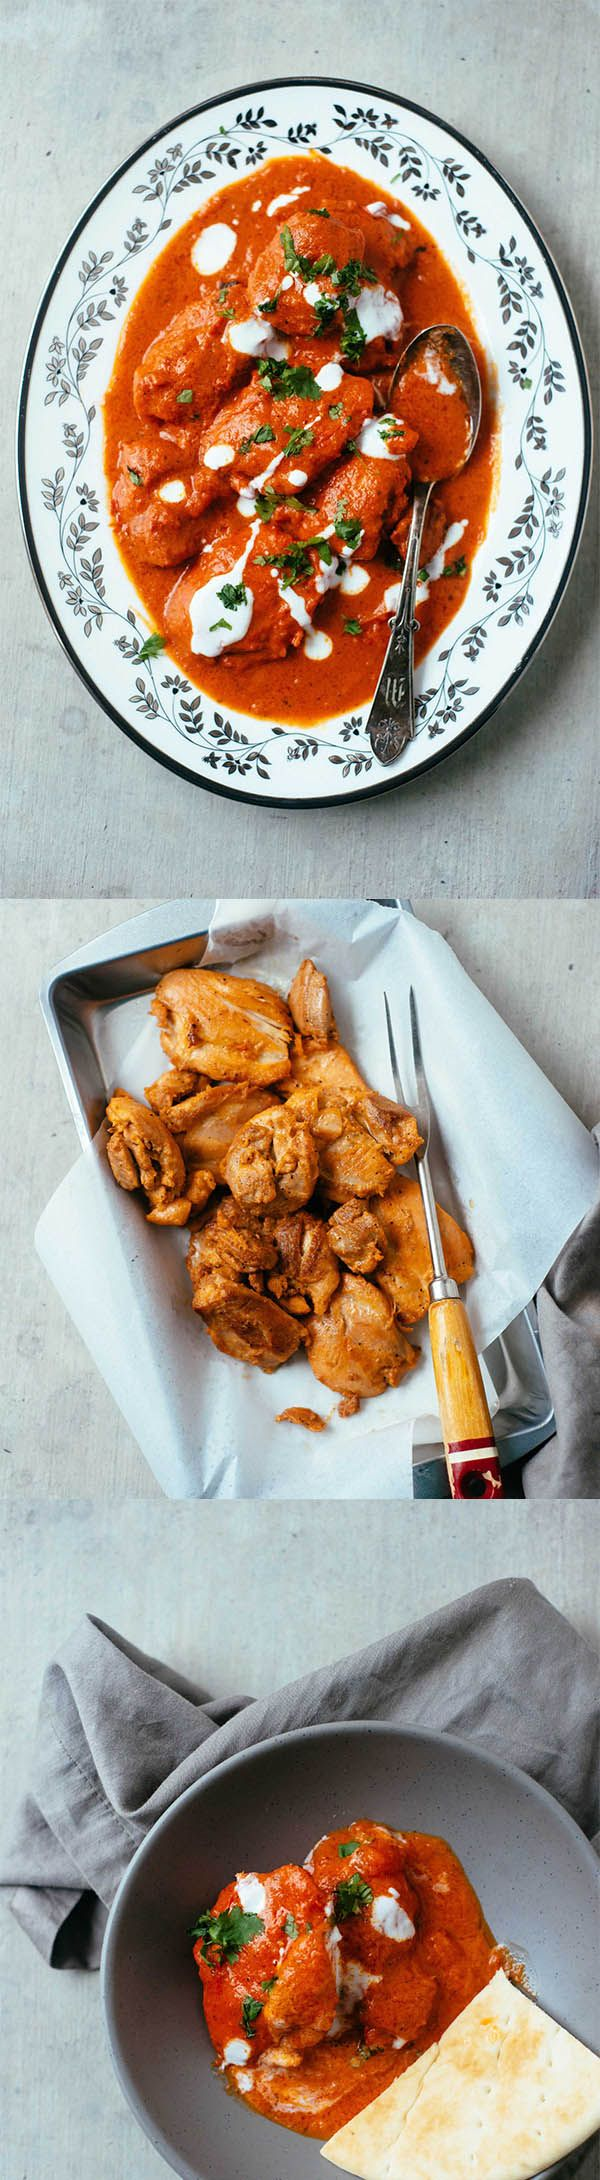 65 best indian recipes images on pinterest easy delicious recipes butter chicken a delicious and easy recipe for a full flavored indian butter chicken that will make you want to lick your plate clean forumfinder Gallery